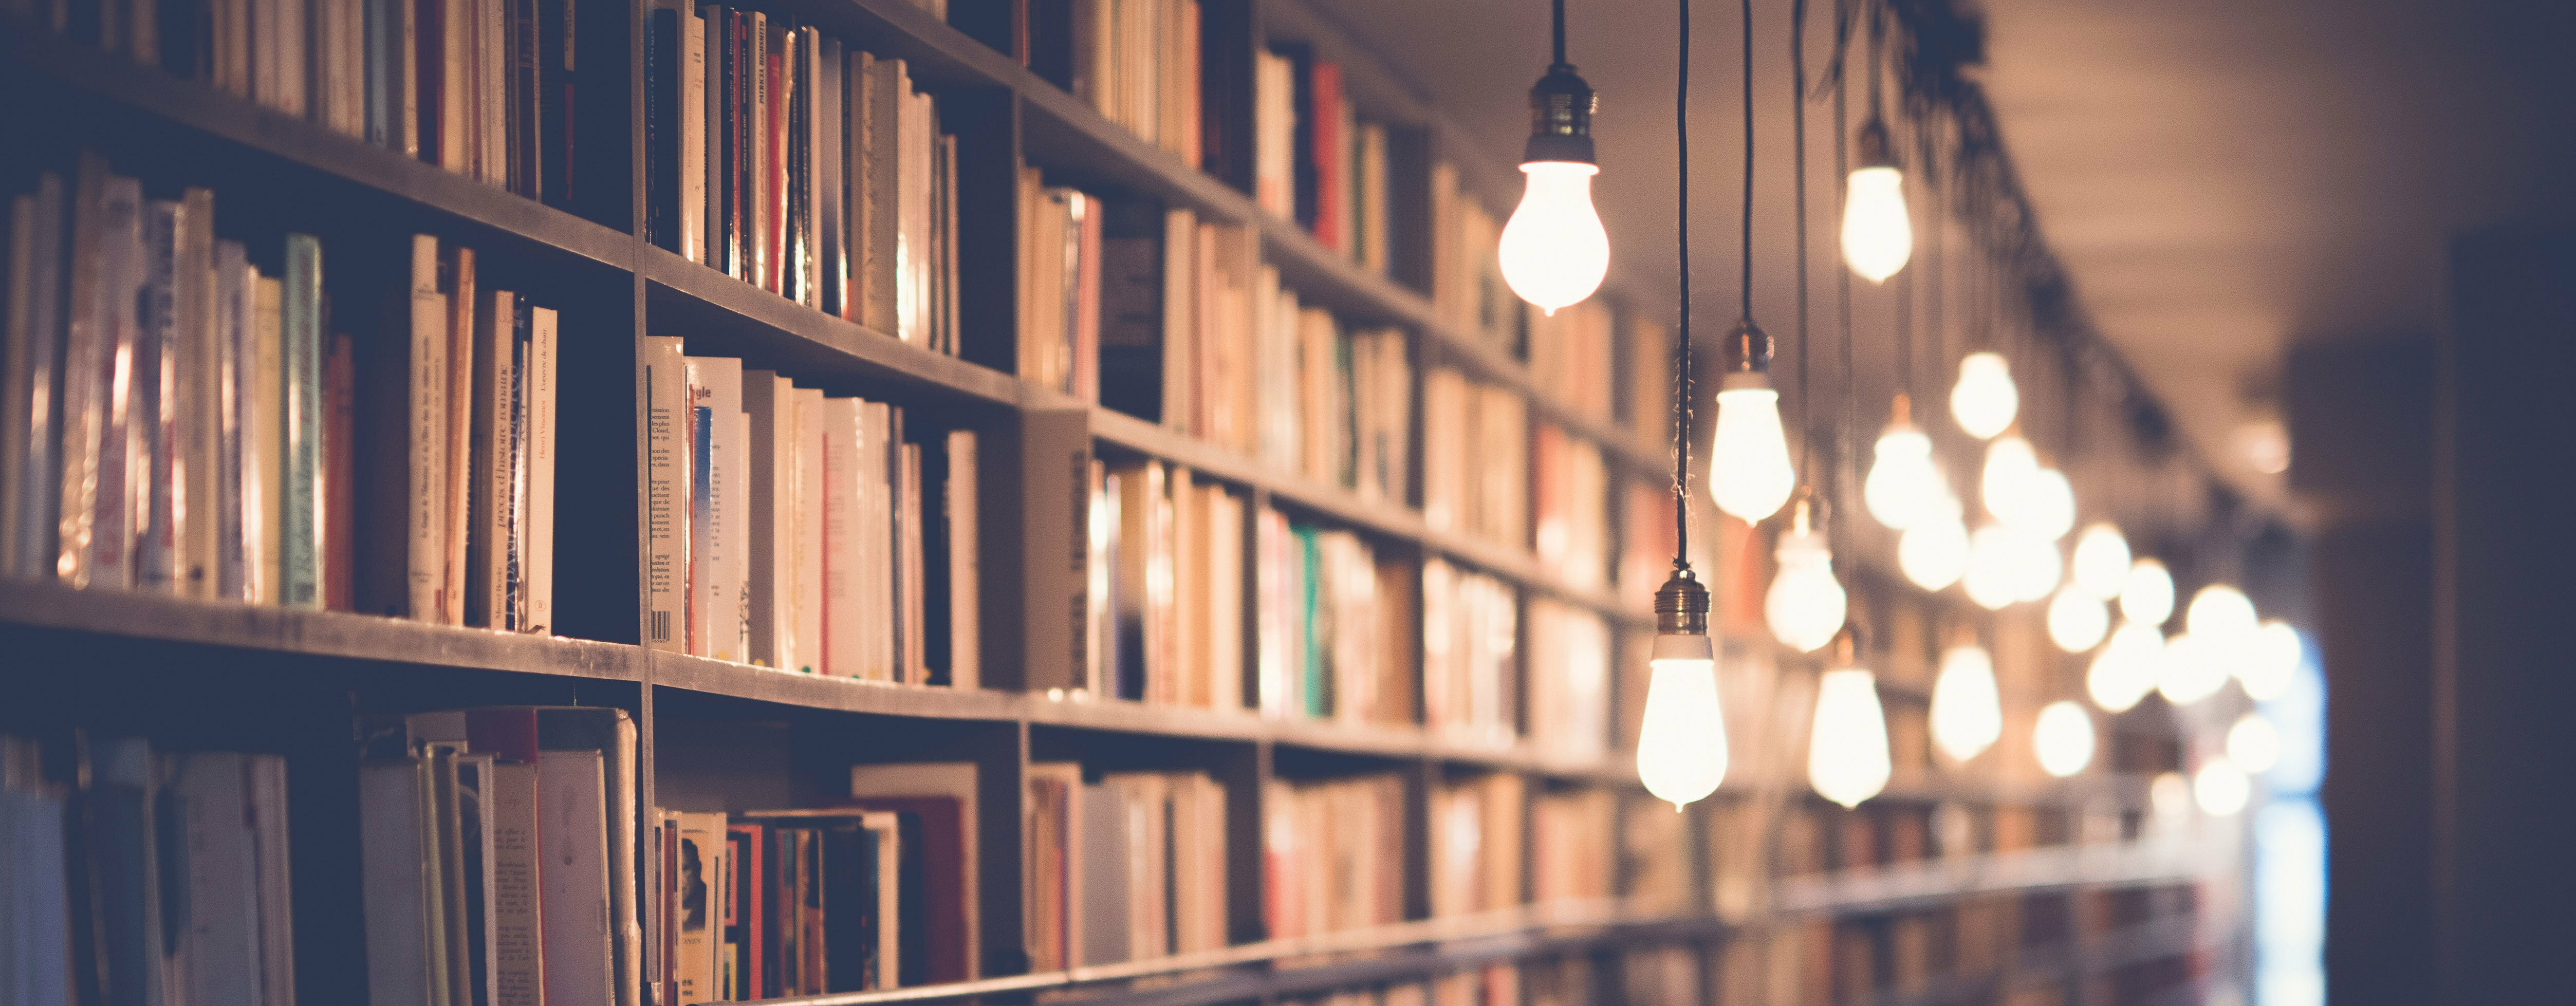 Books Lamps